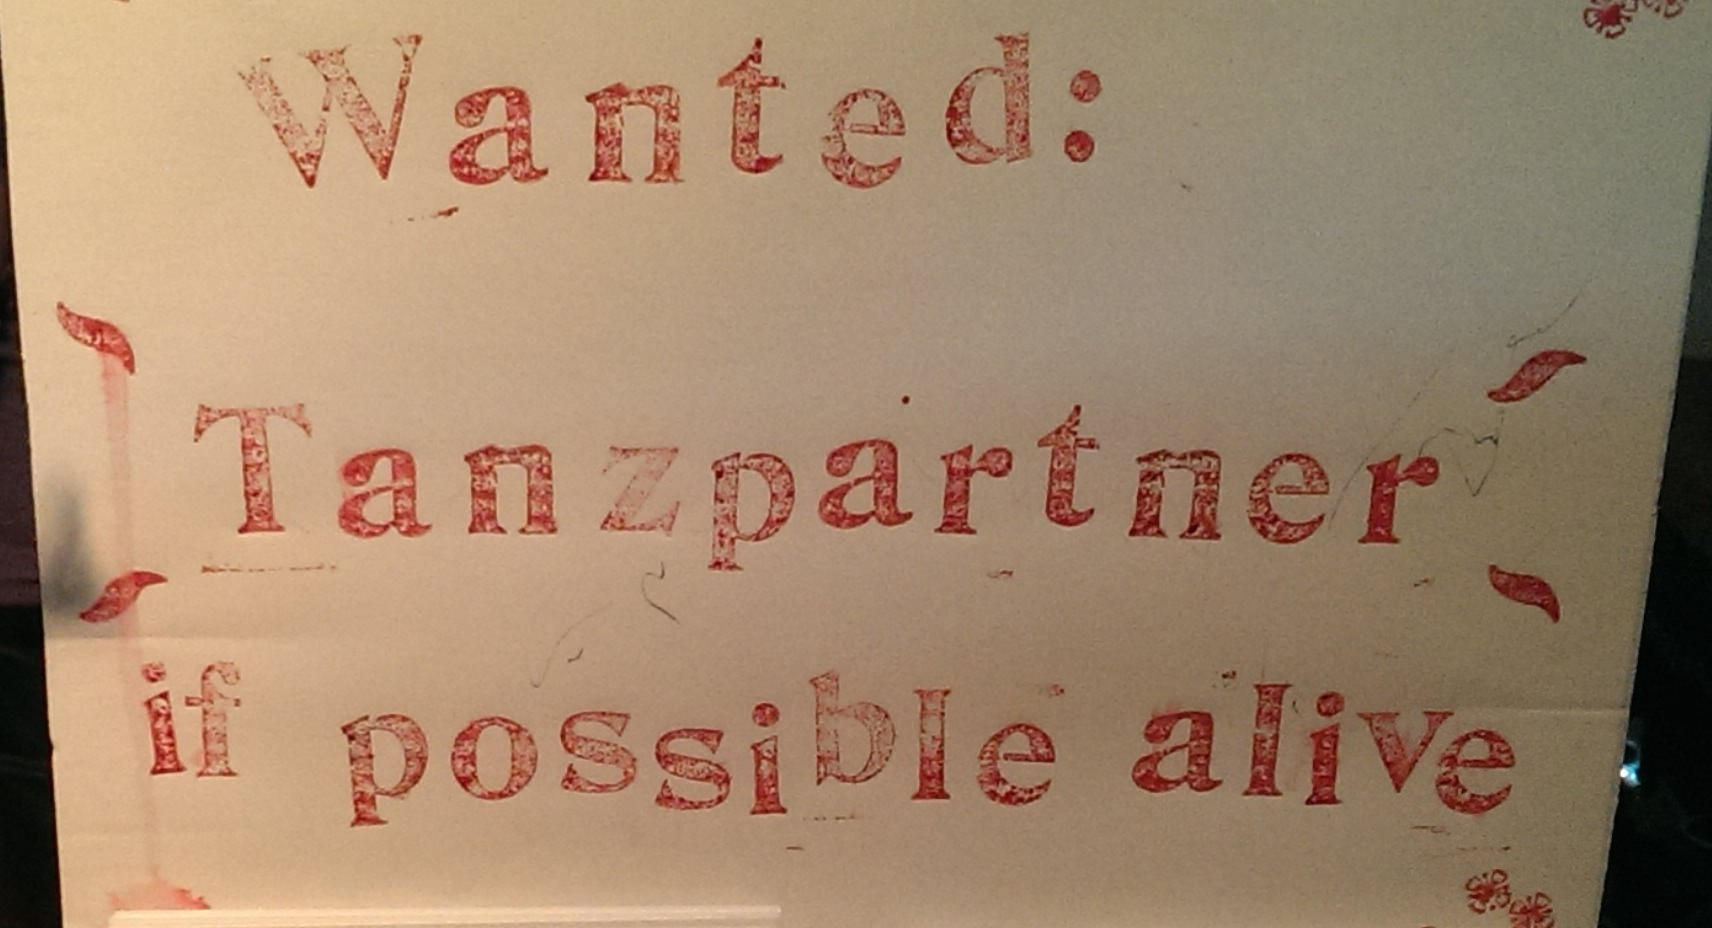 wanted tanzpartner